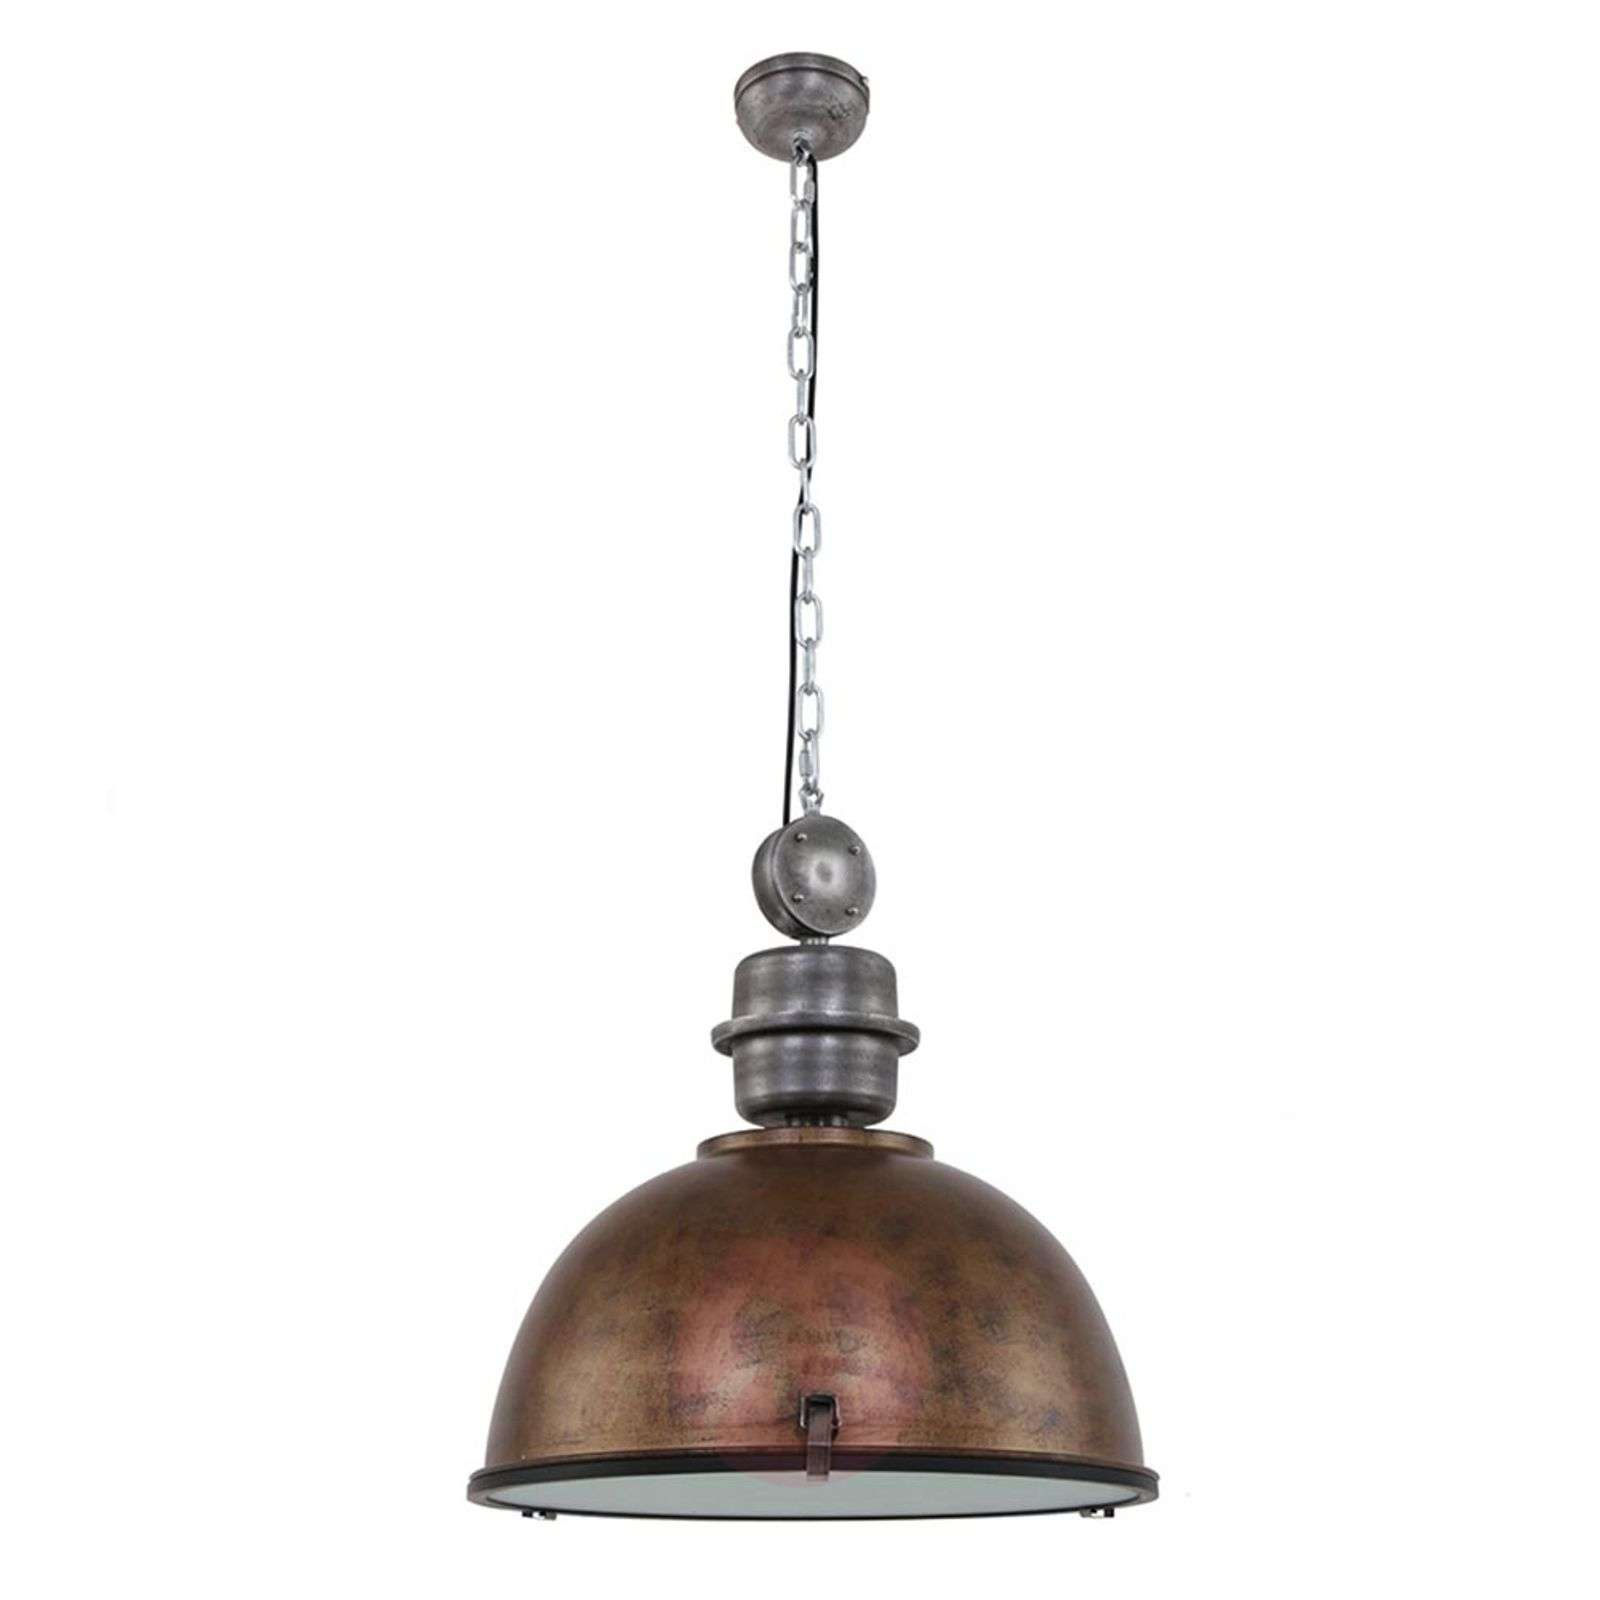 Suspension Marron En Industriel Xxl Design Bikkel fvgmIYb76y